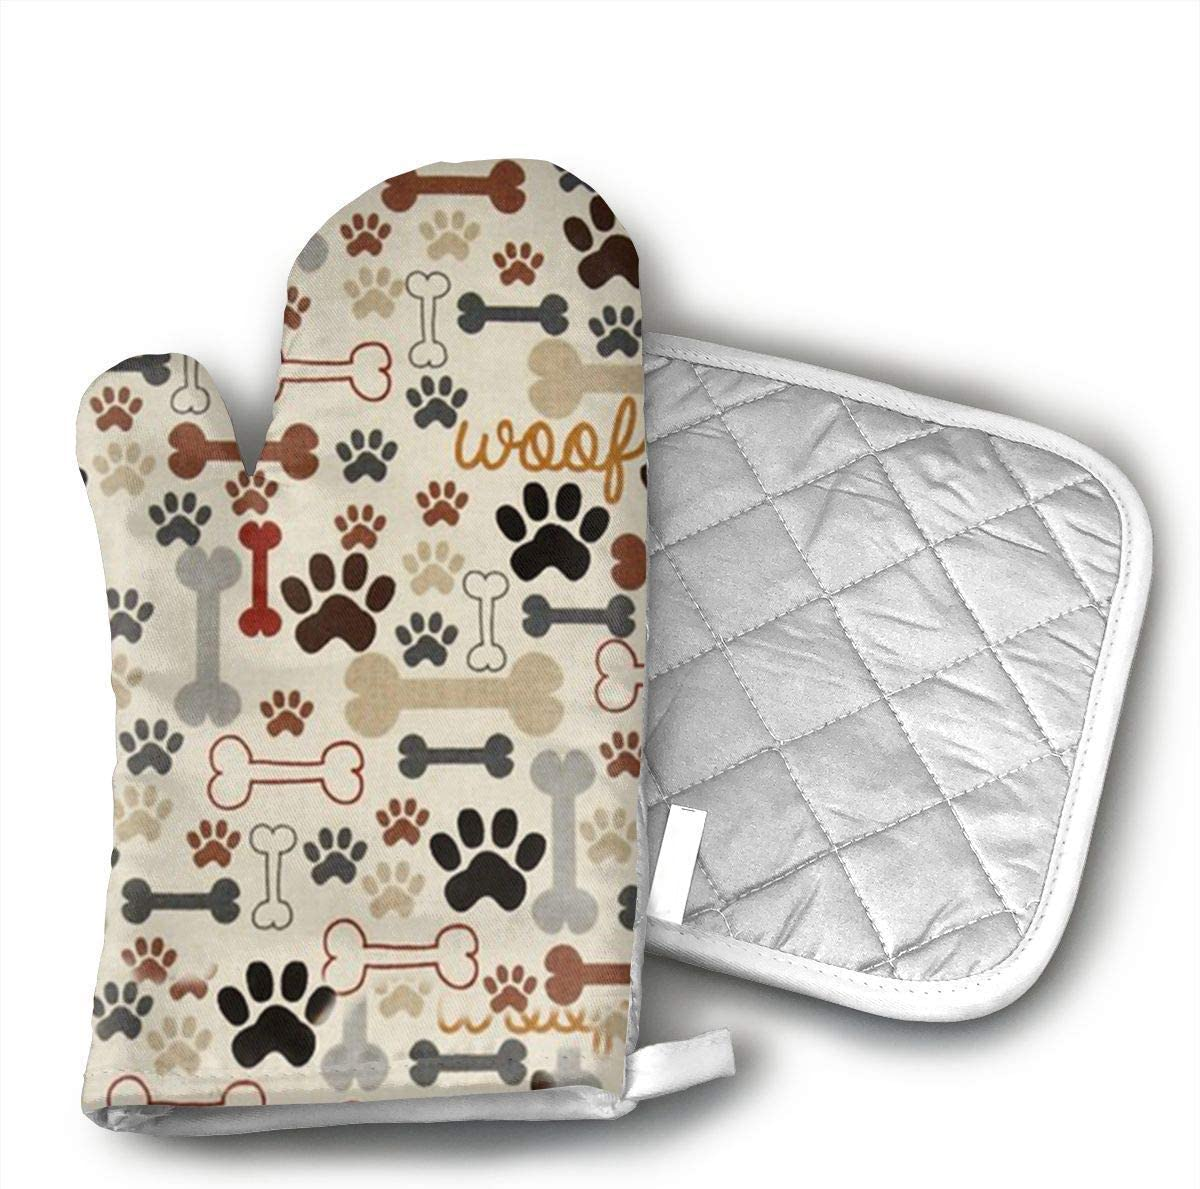 NoveltyGloves Dog Bones Paw Prints Oven Mitts,Professional Heat Resistant Microwave BBQ Oven Insulation Thickening Cotton Gloves Baking Pot Mitts Soft Inner Lining Kitchen Cooking